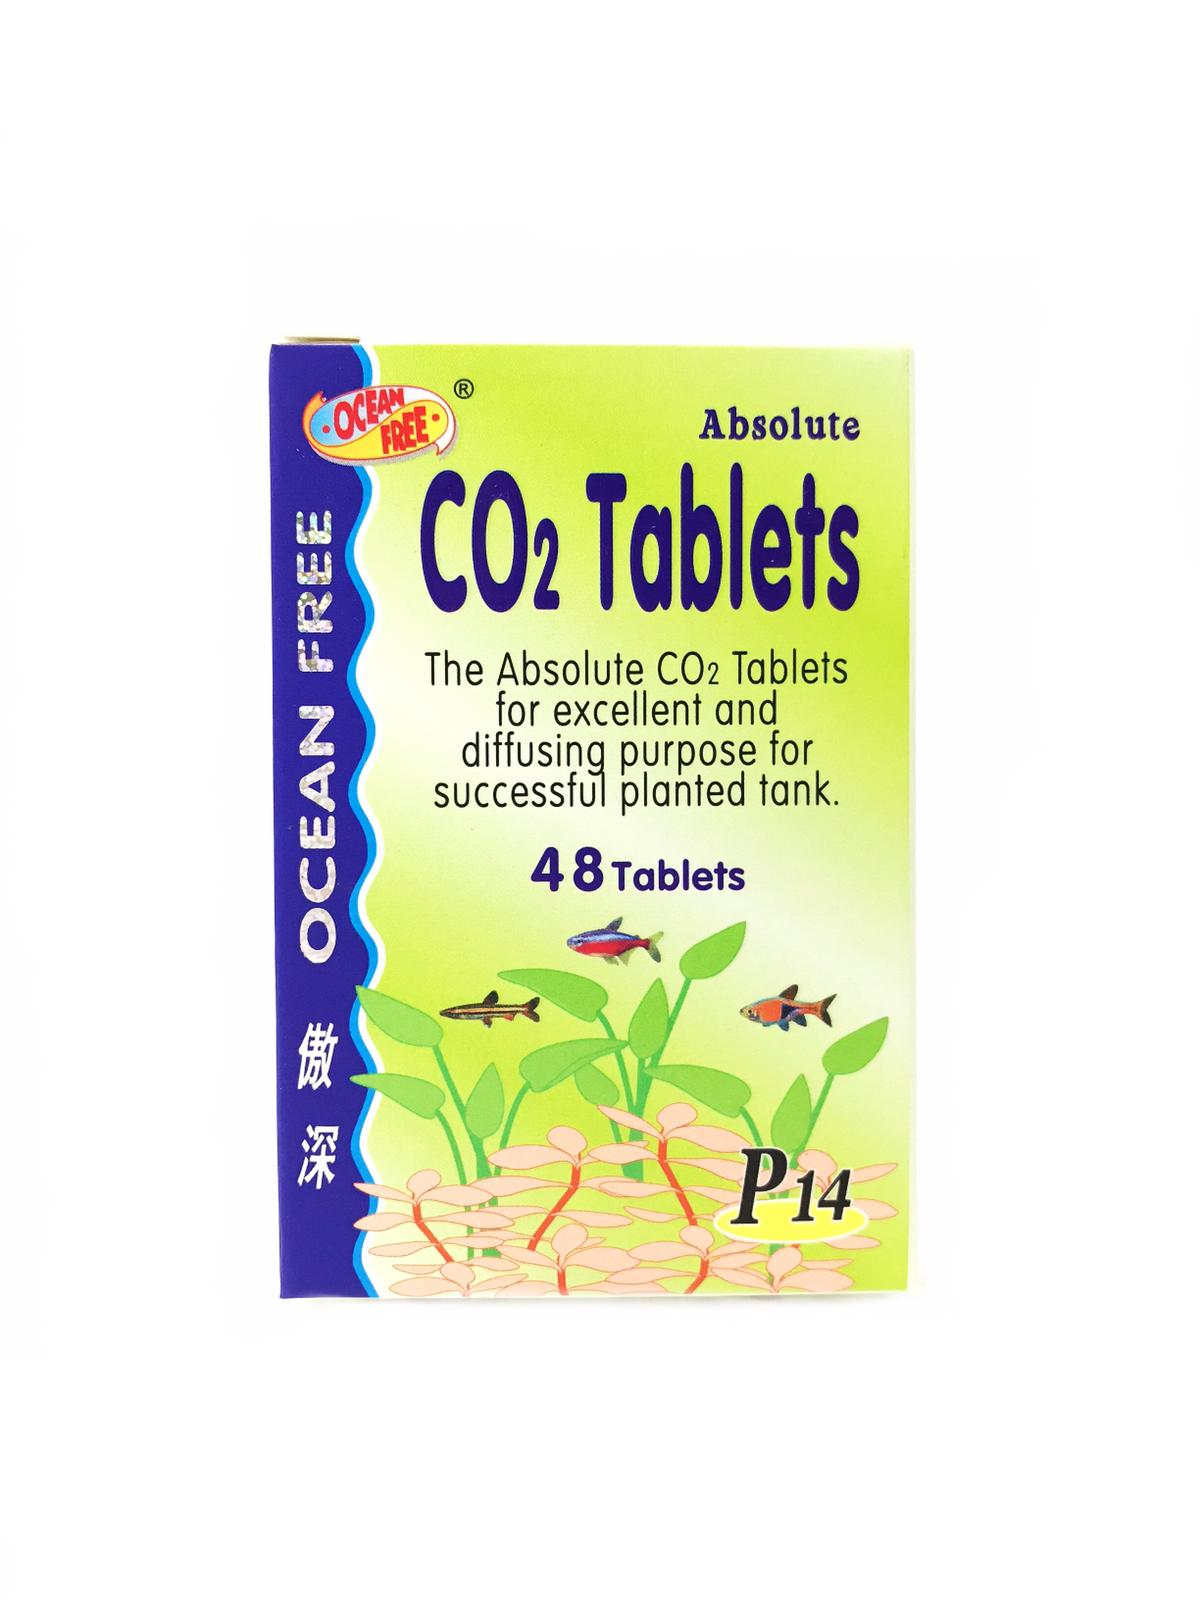 OF Absolute Co2 Tablets